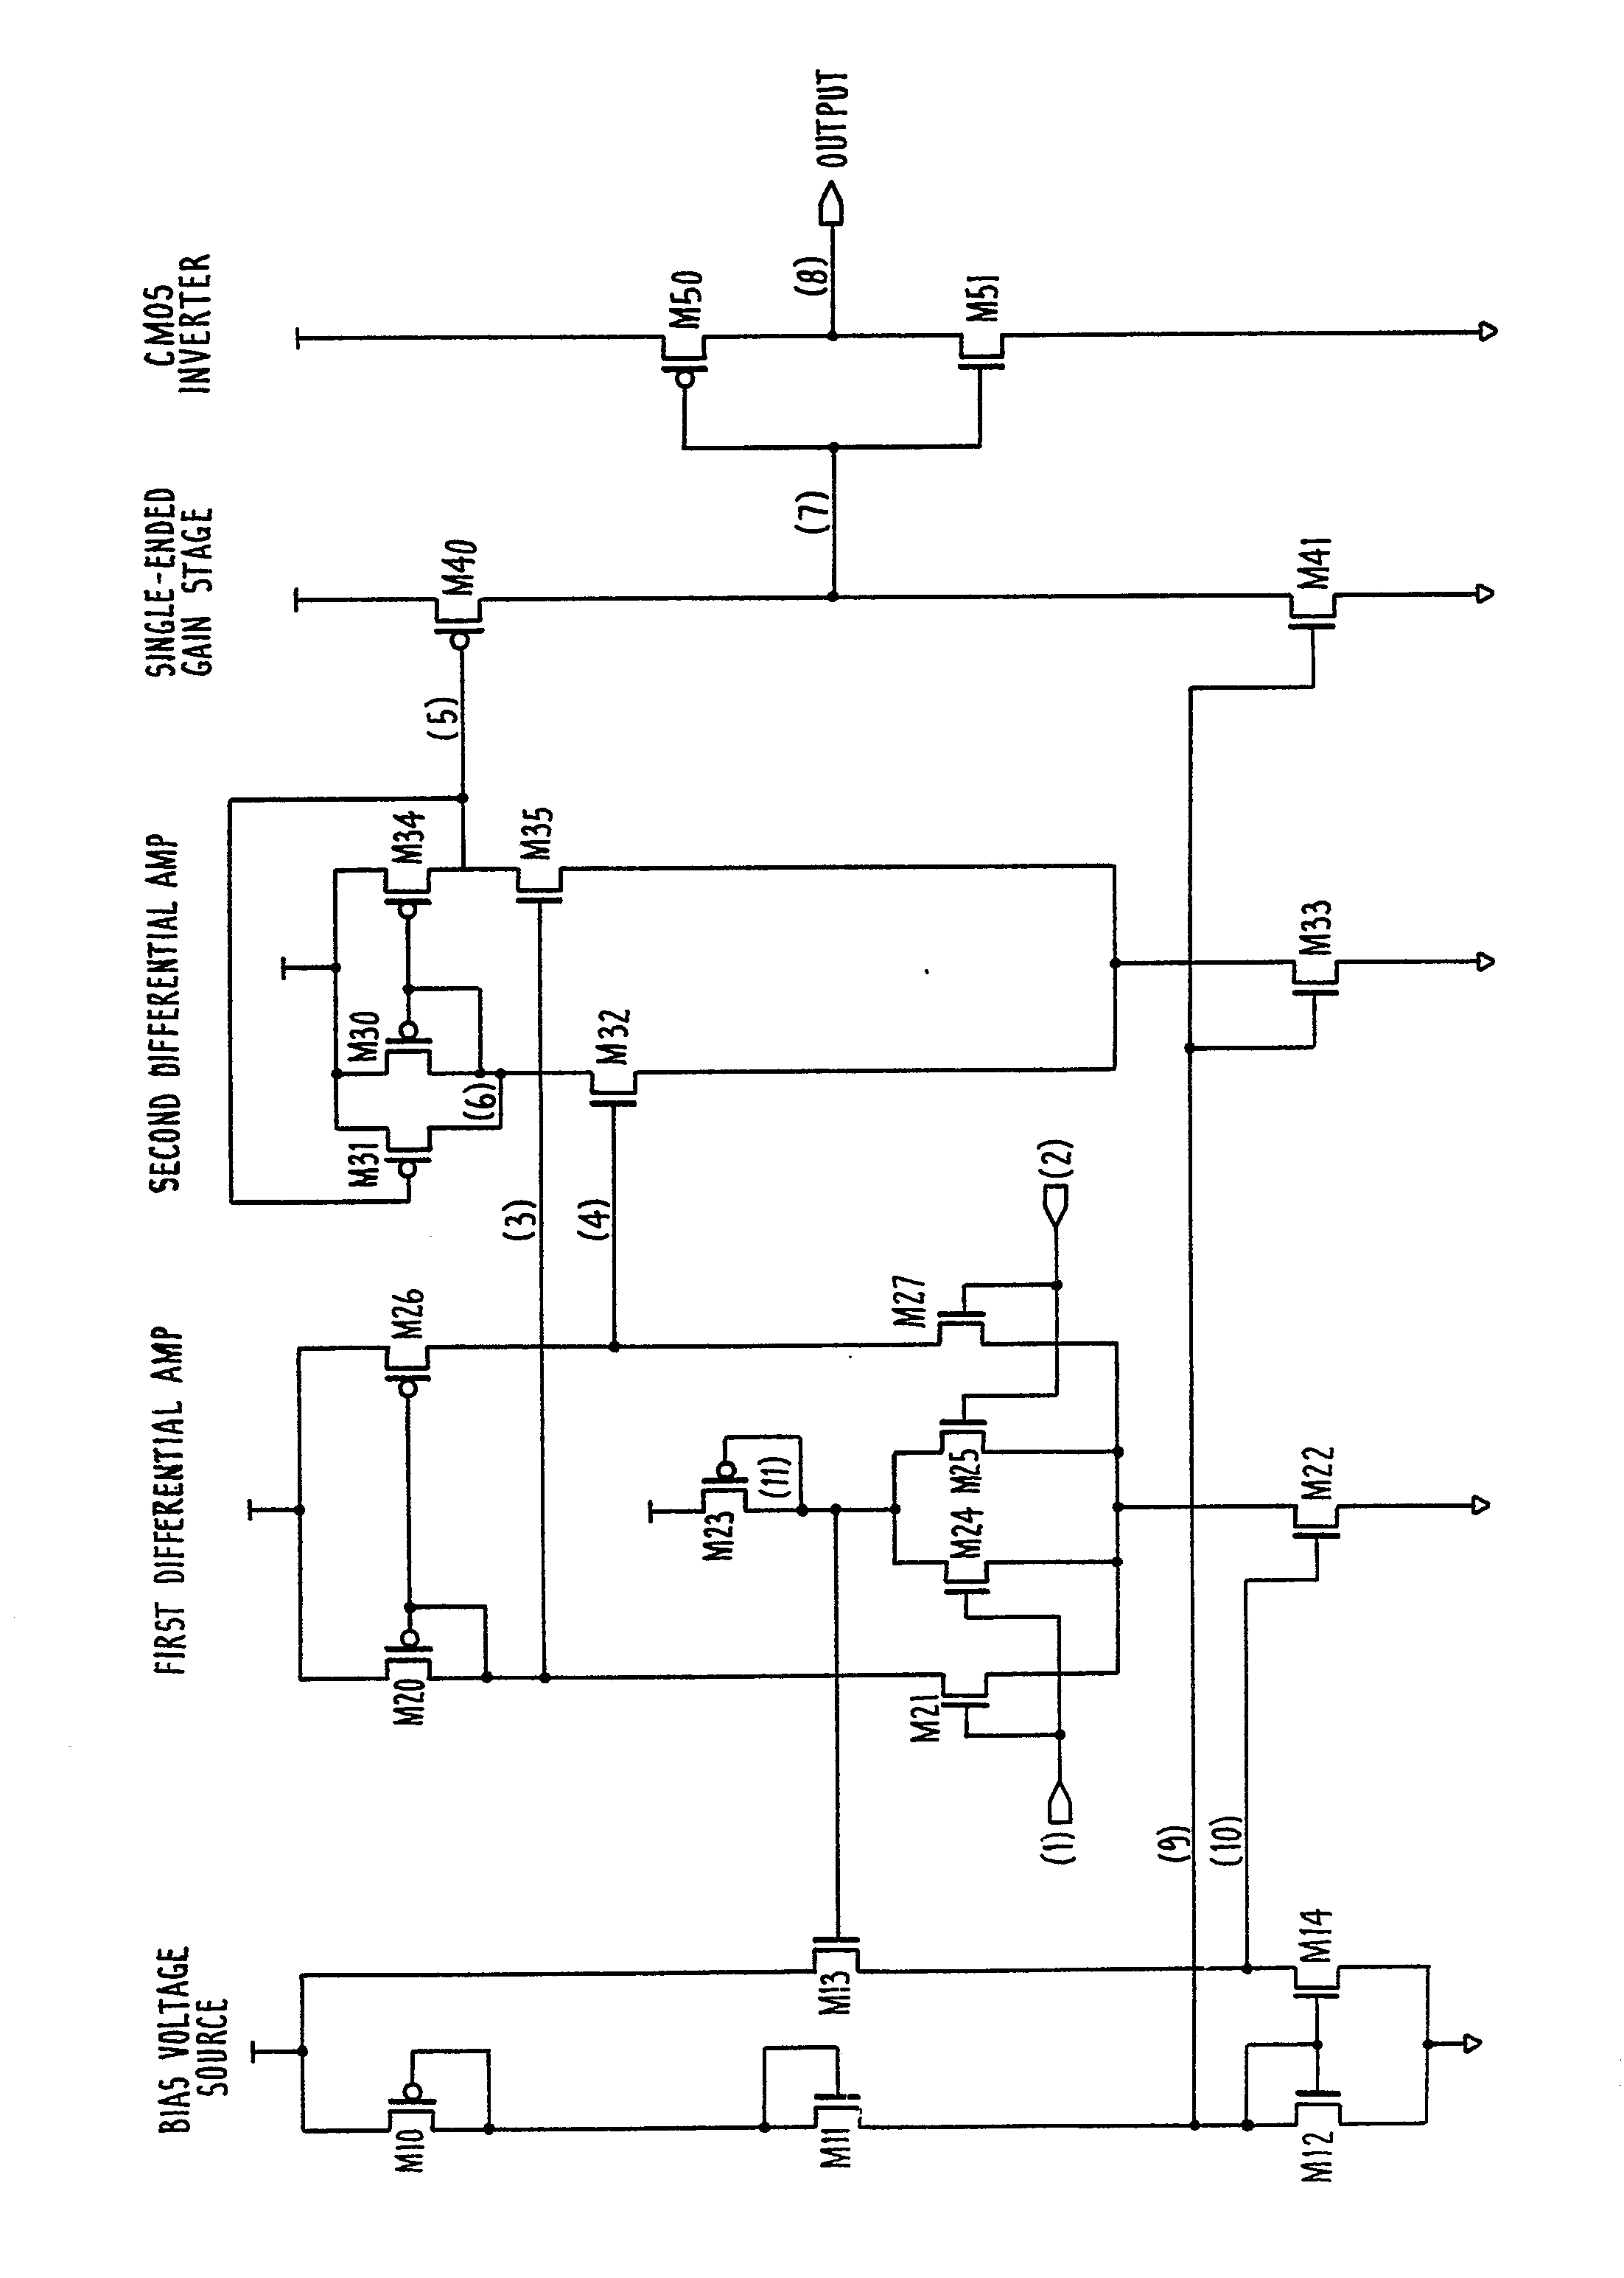 High Speed Cmos Comparator With Hysteresis Patent 0345621 The Following Open Collector Drain Circuit Drawing